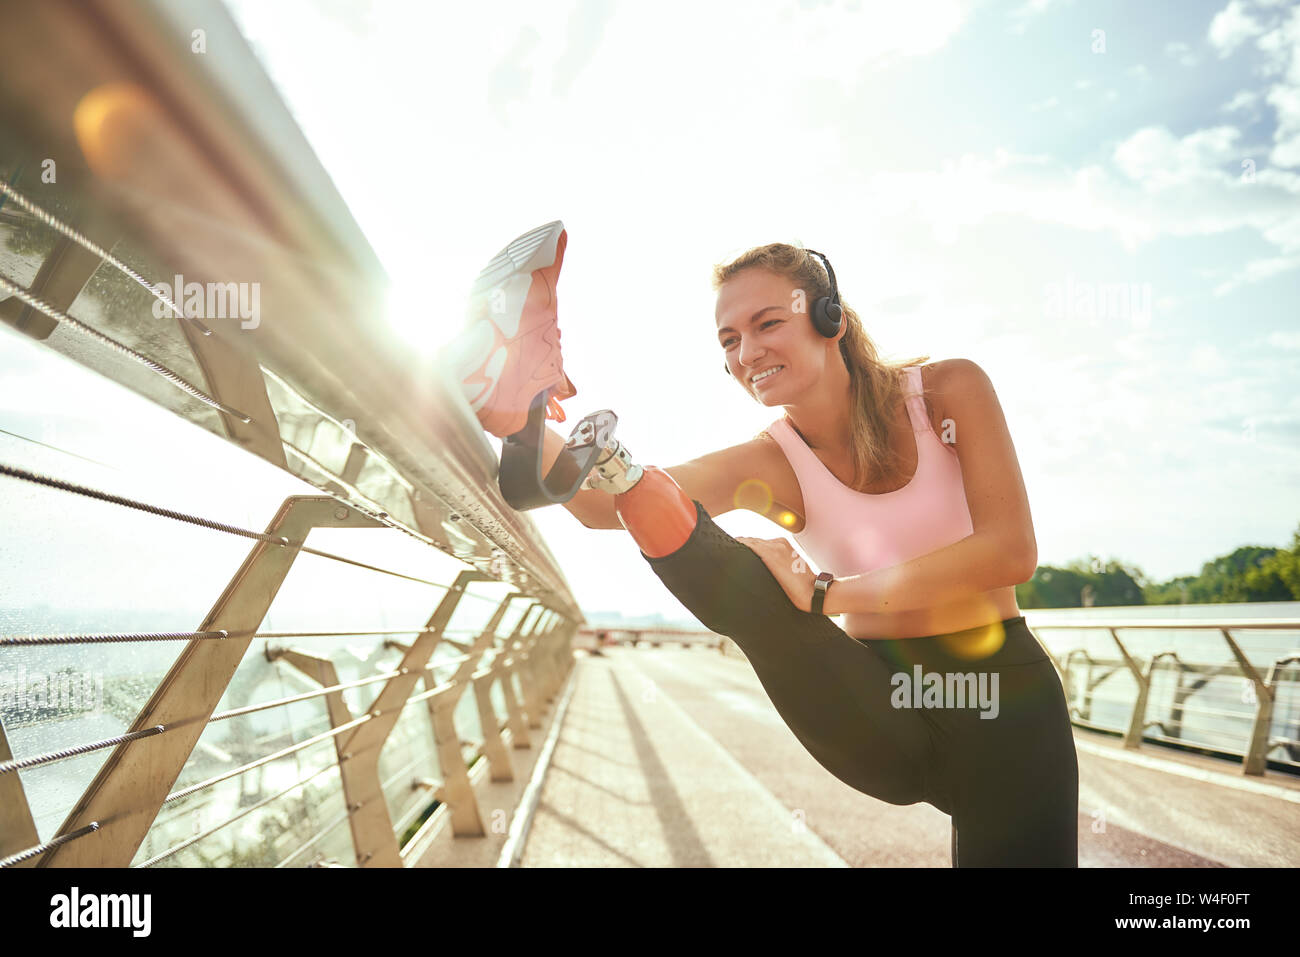 Disabled positive woman in sportswear and headphones